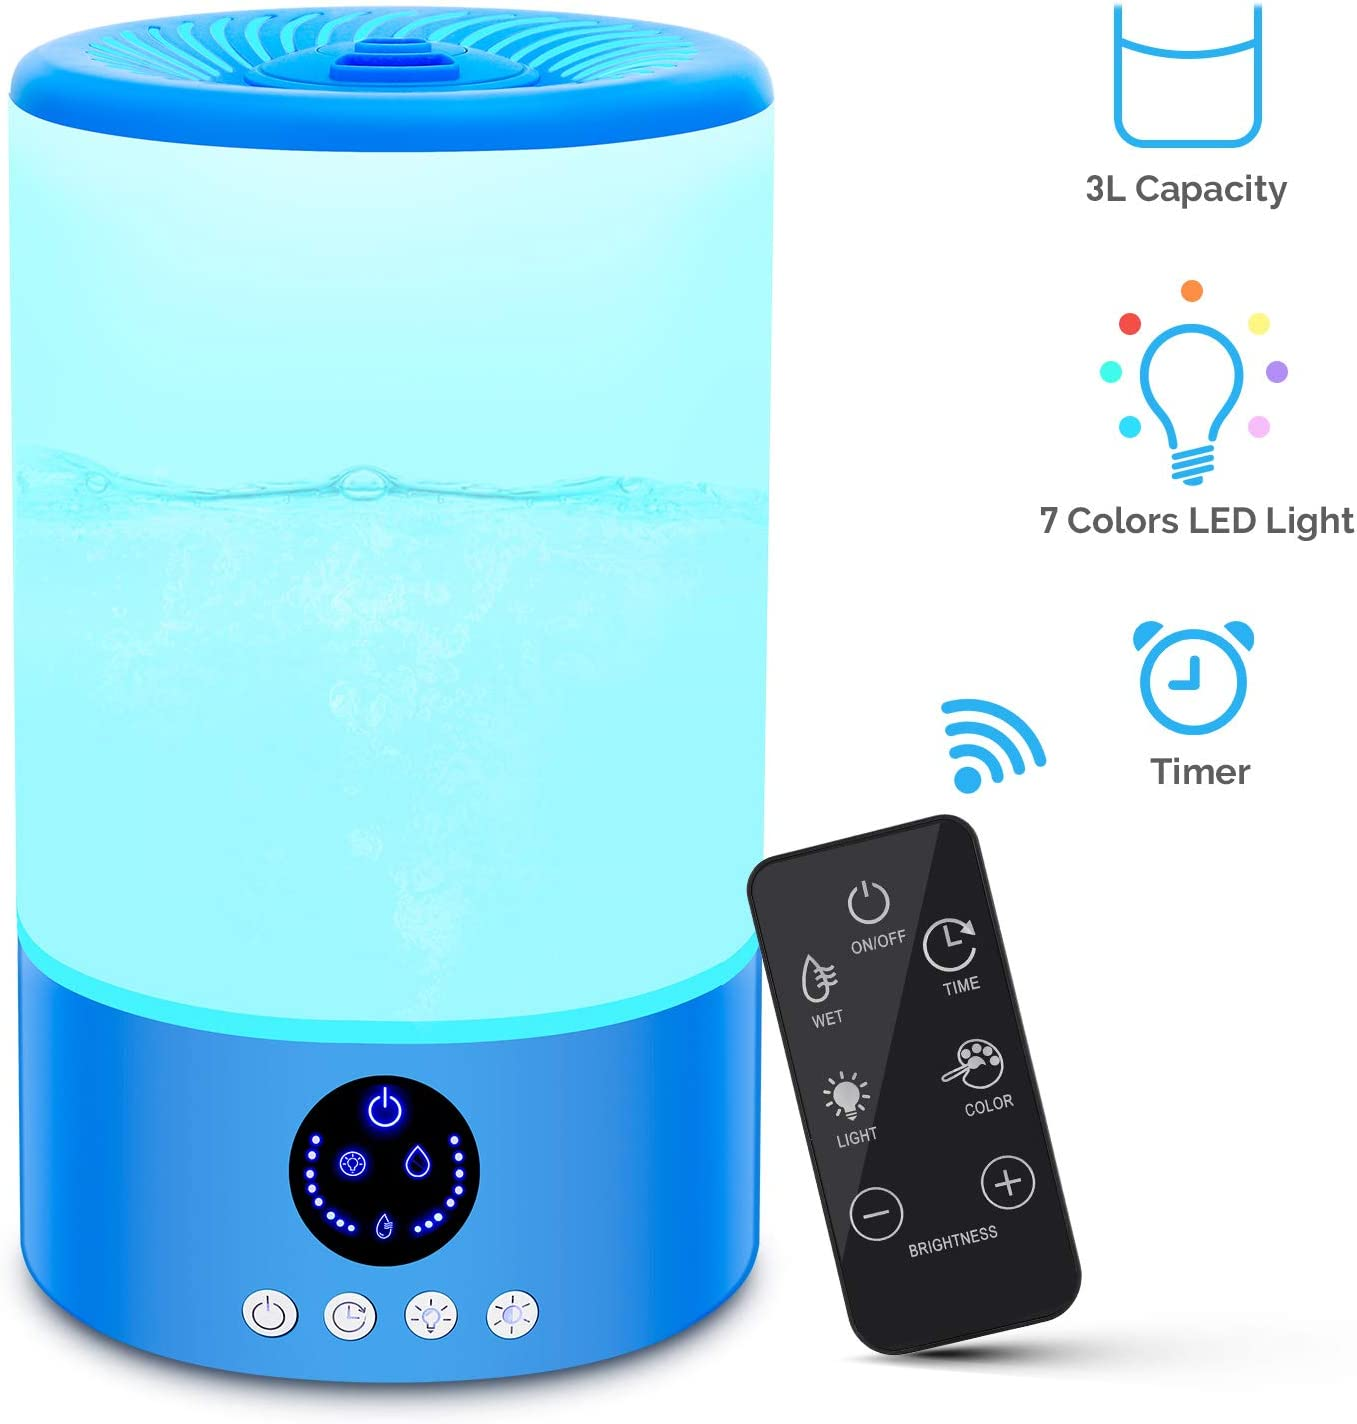 TOCOOL Cool Mist Humidifier, Quiet Humidifiers for Bedroom Babies, 3L Large Humidifier Top Fill Ultrasonic Humidifier with Color Mood Lights Remote Control, Adjustable Mist Output, Auto Shut-Off